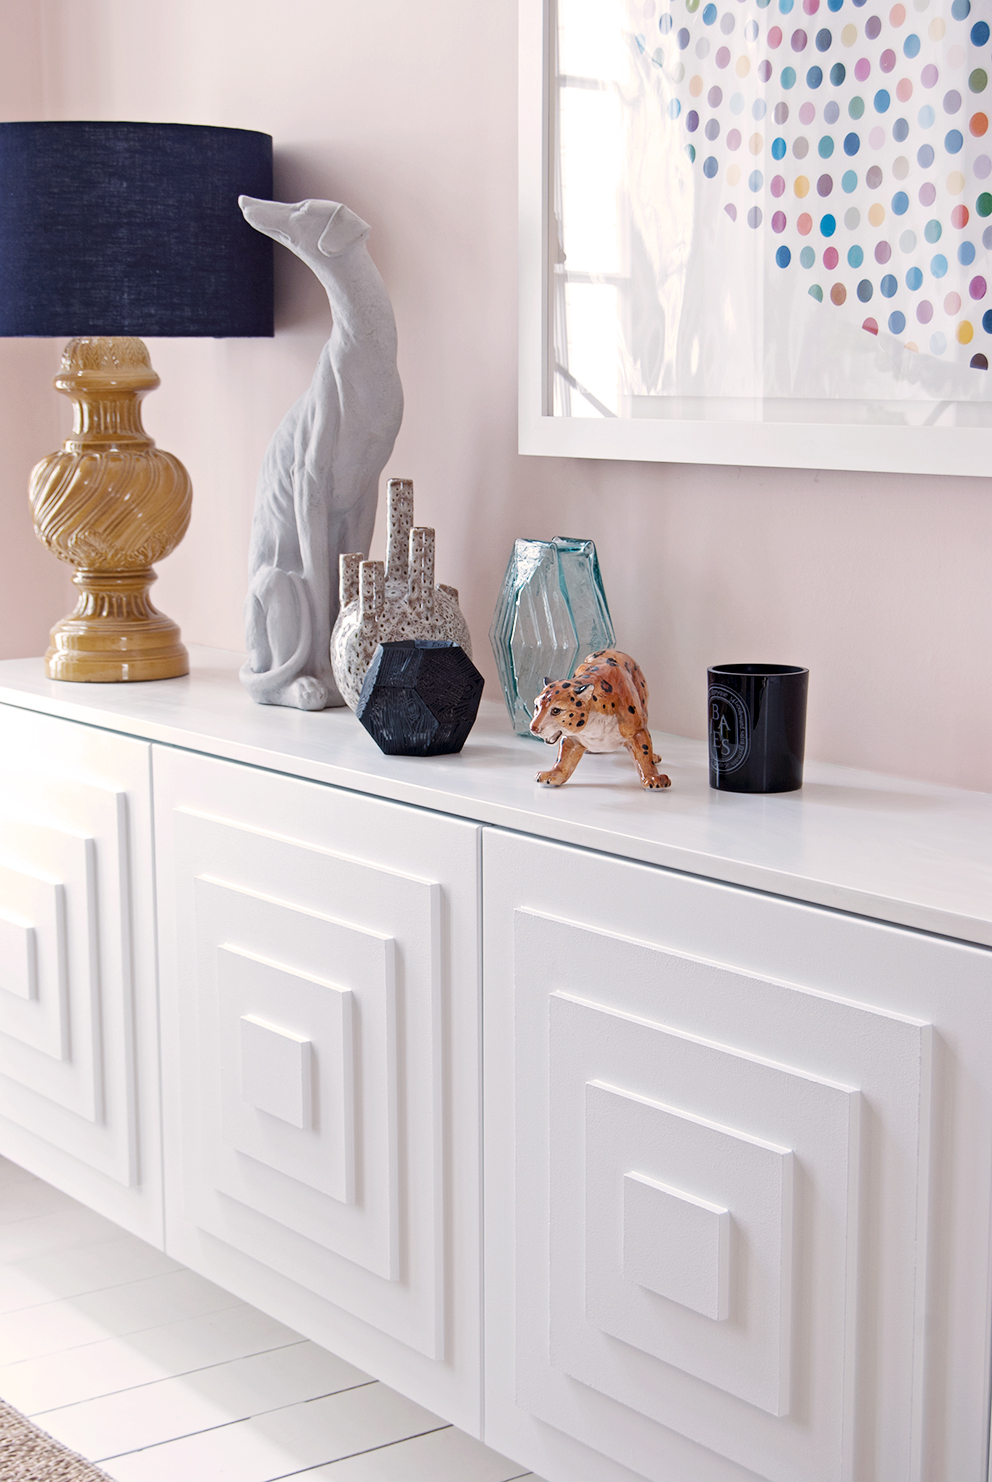 Sideboard Bilder Sideboard Pimping Or Adding Stepped Panels To Sideboard Doors